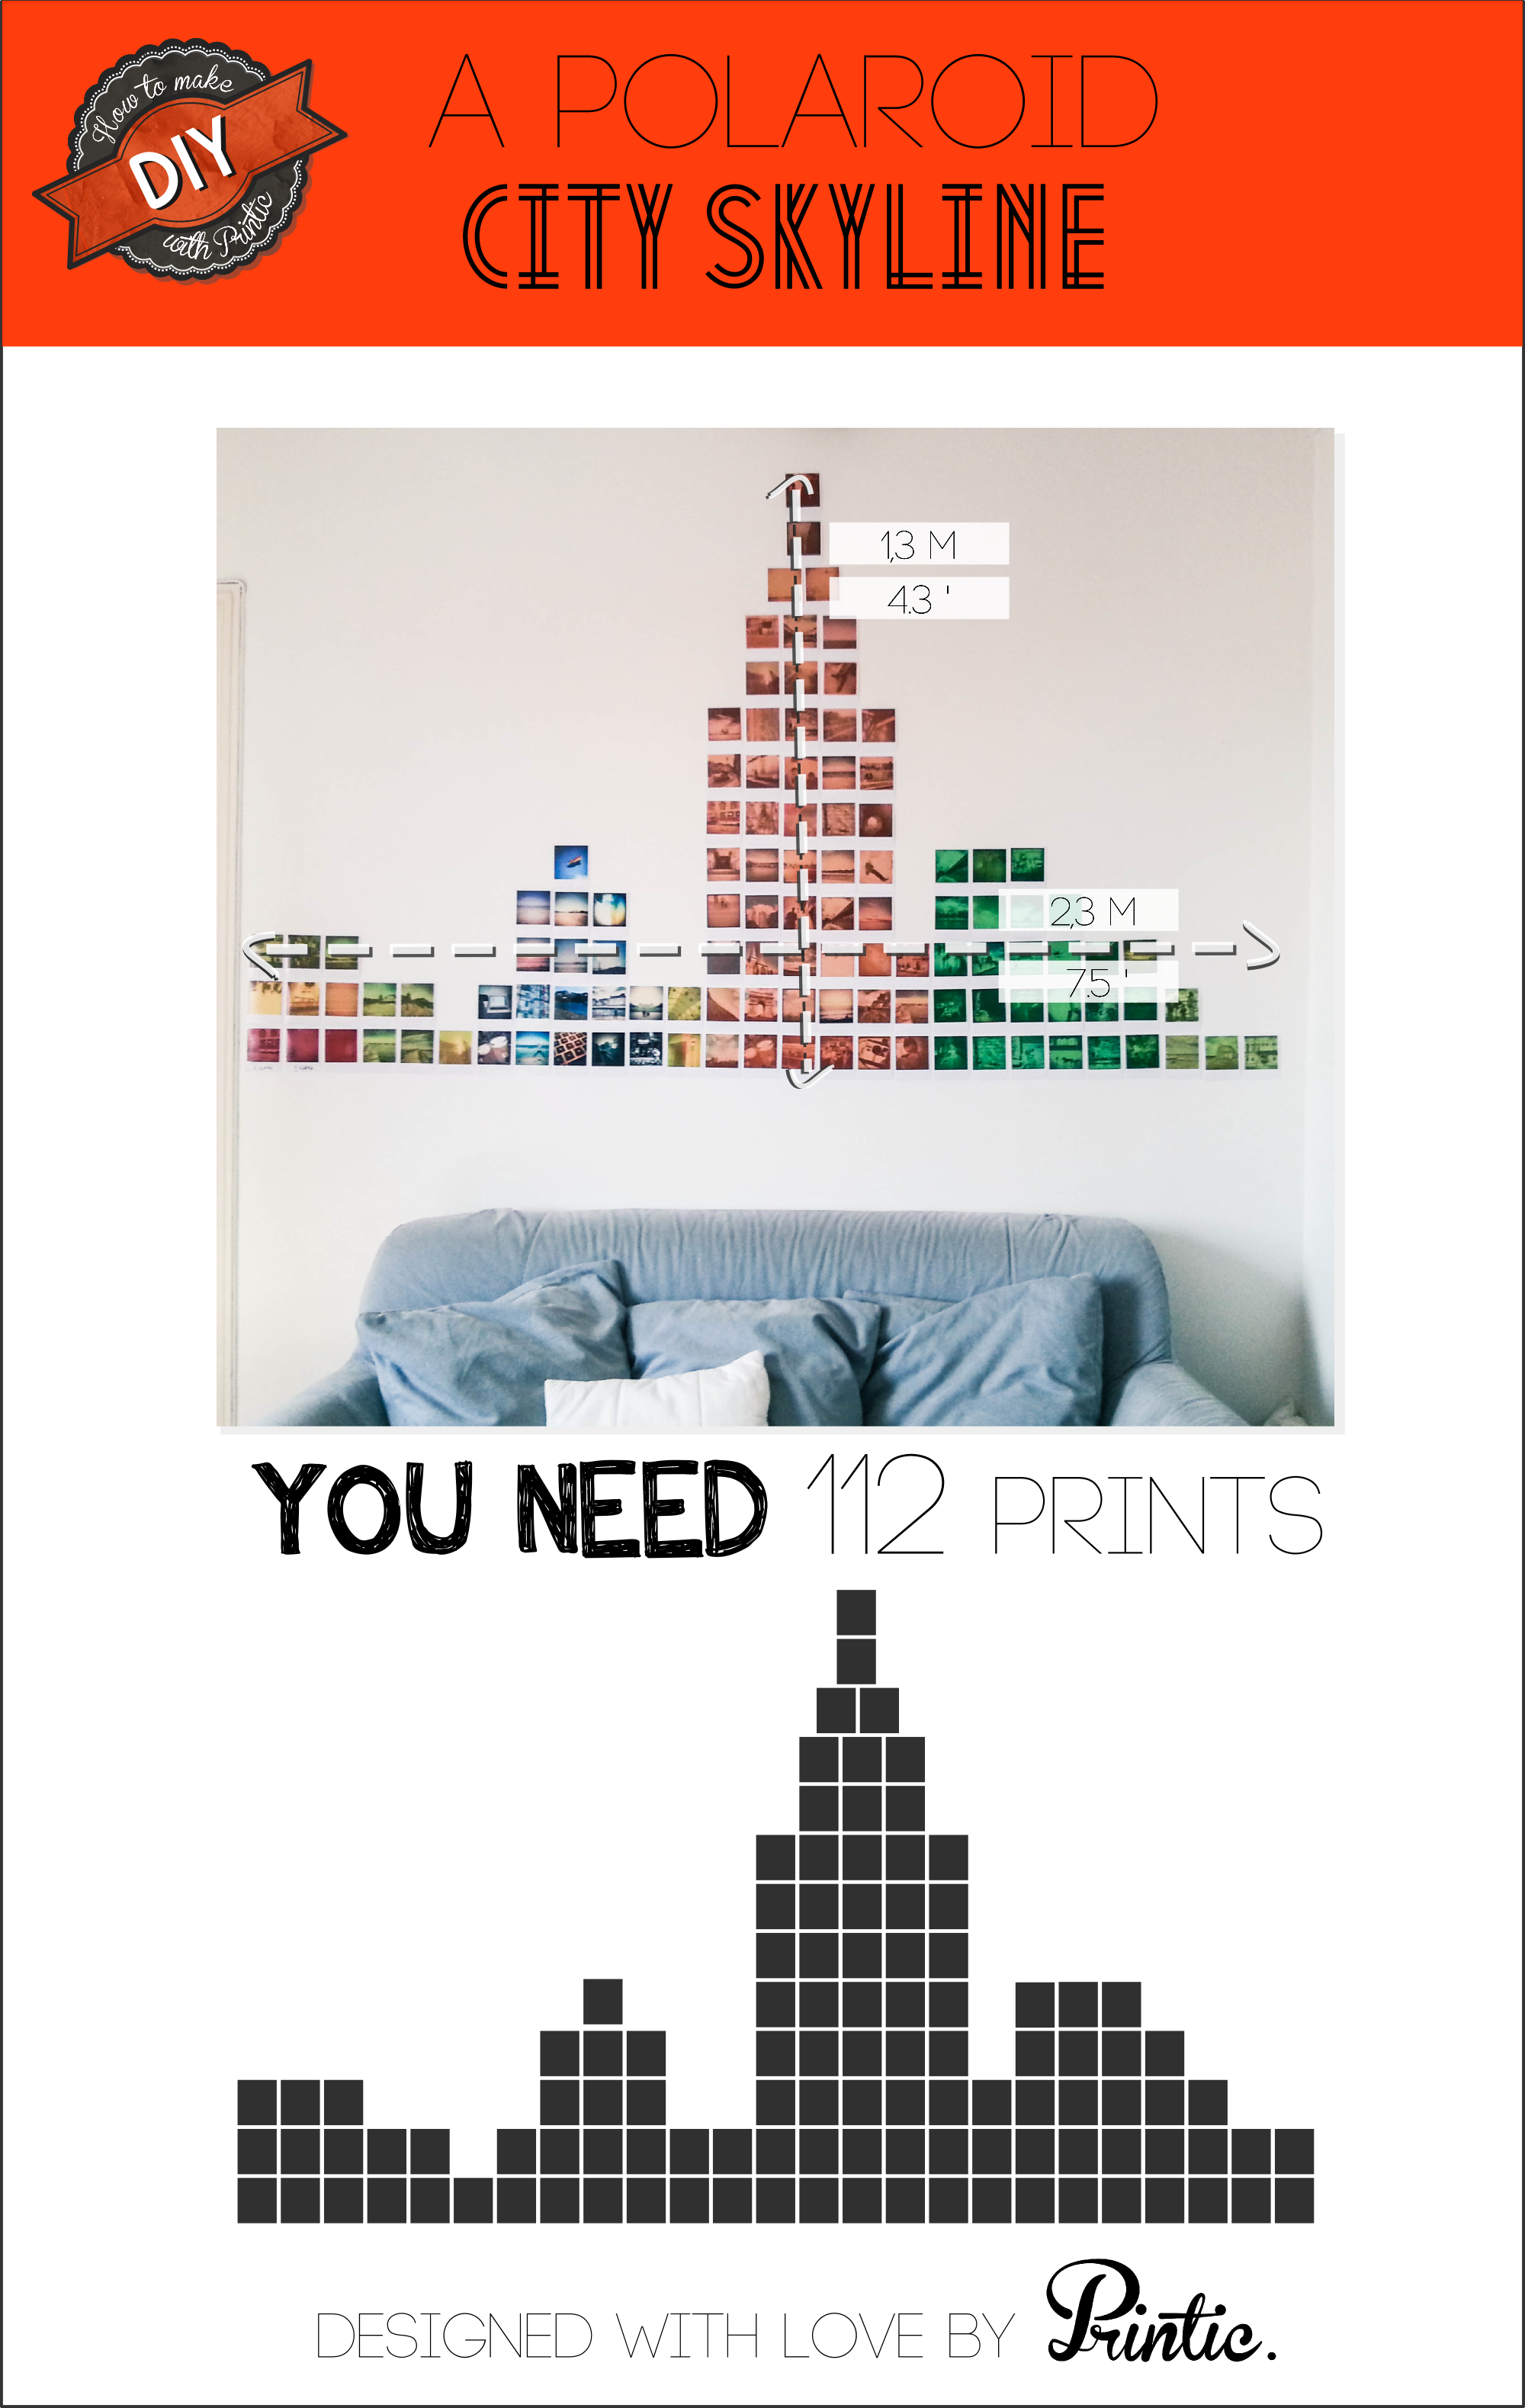 Printic diy skyline wall decoration with polaroids photo printic diy skyline wall decoration with polaroids amipublicfo Image collections